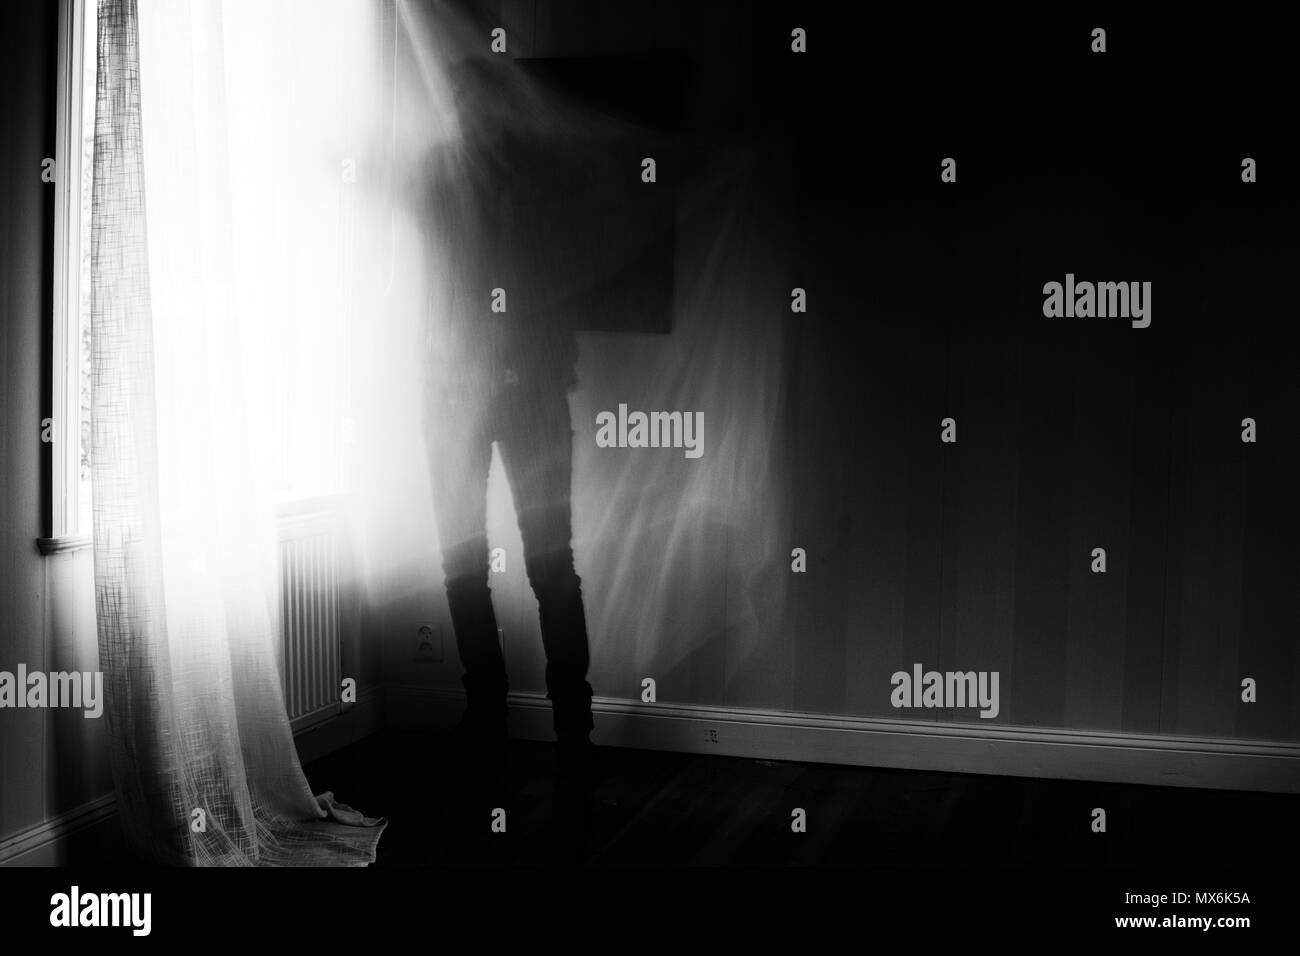 Artistic image with motion blur and grain of person standing in front of window, spooky feeling. - Stock Image